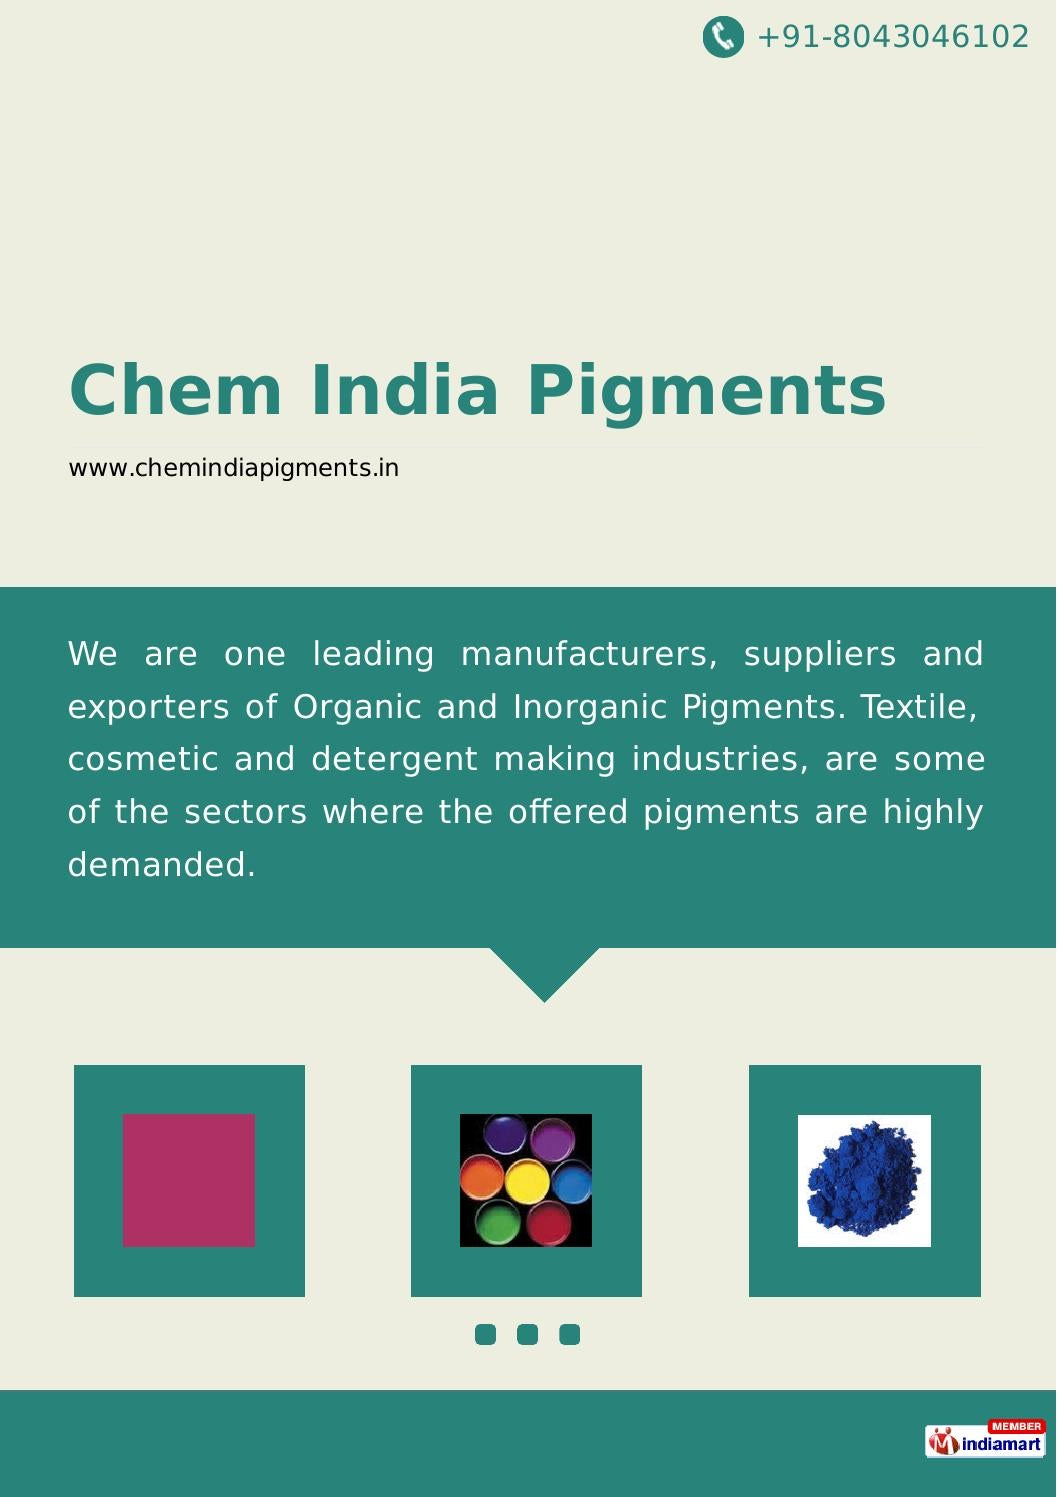 Chem india pigments by Chem India Pigments - issuu